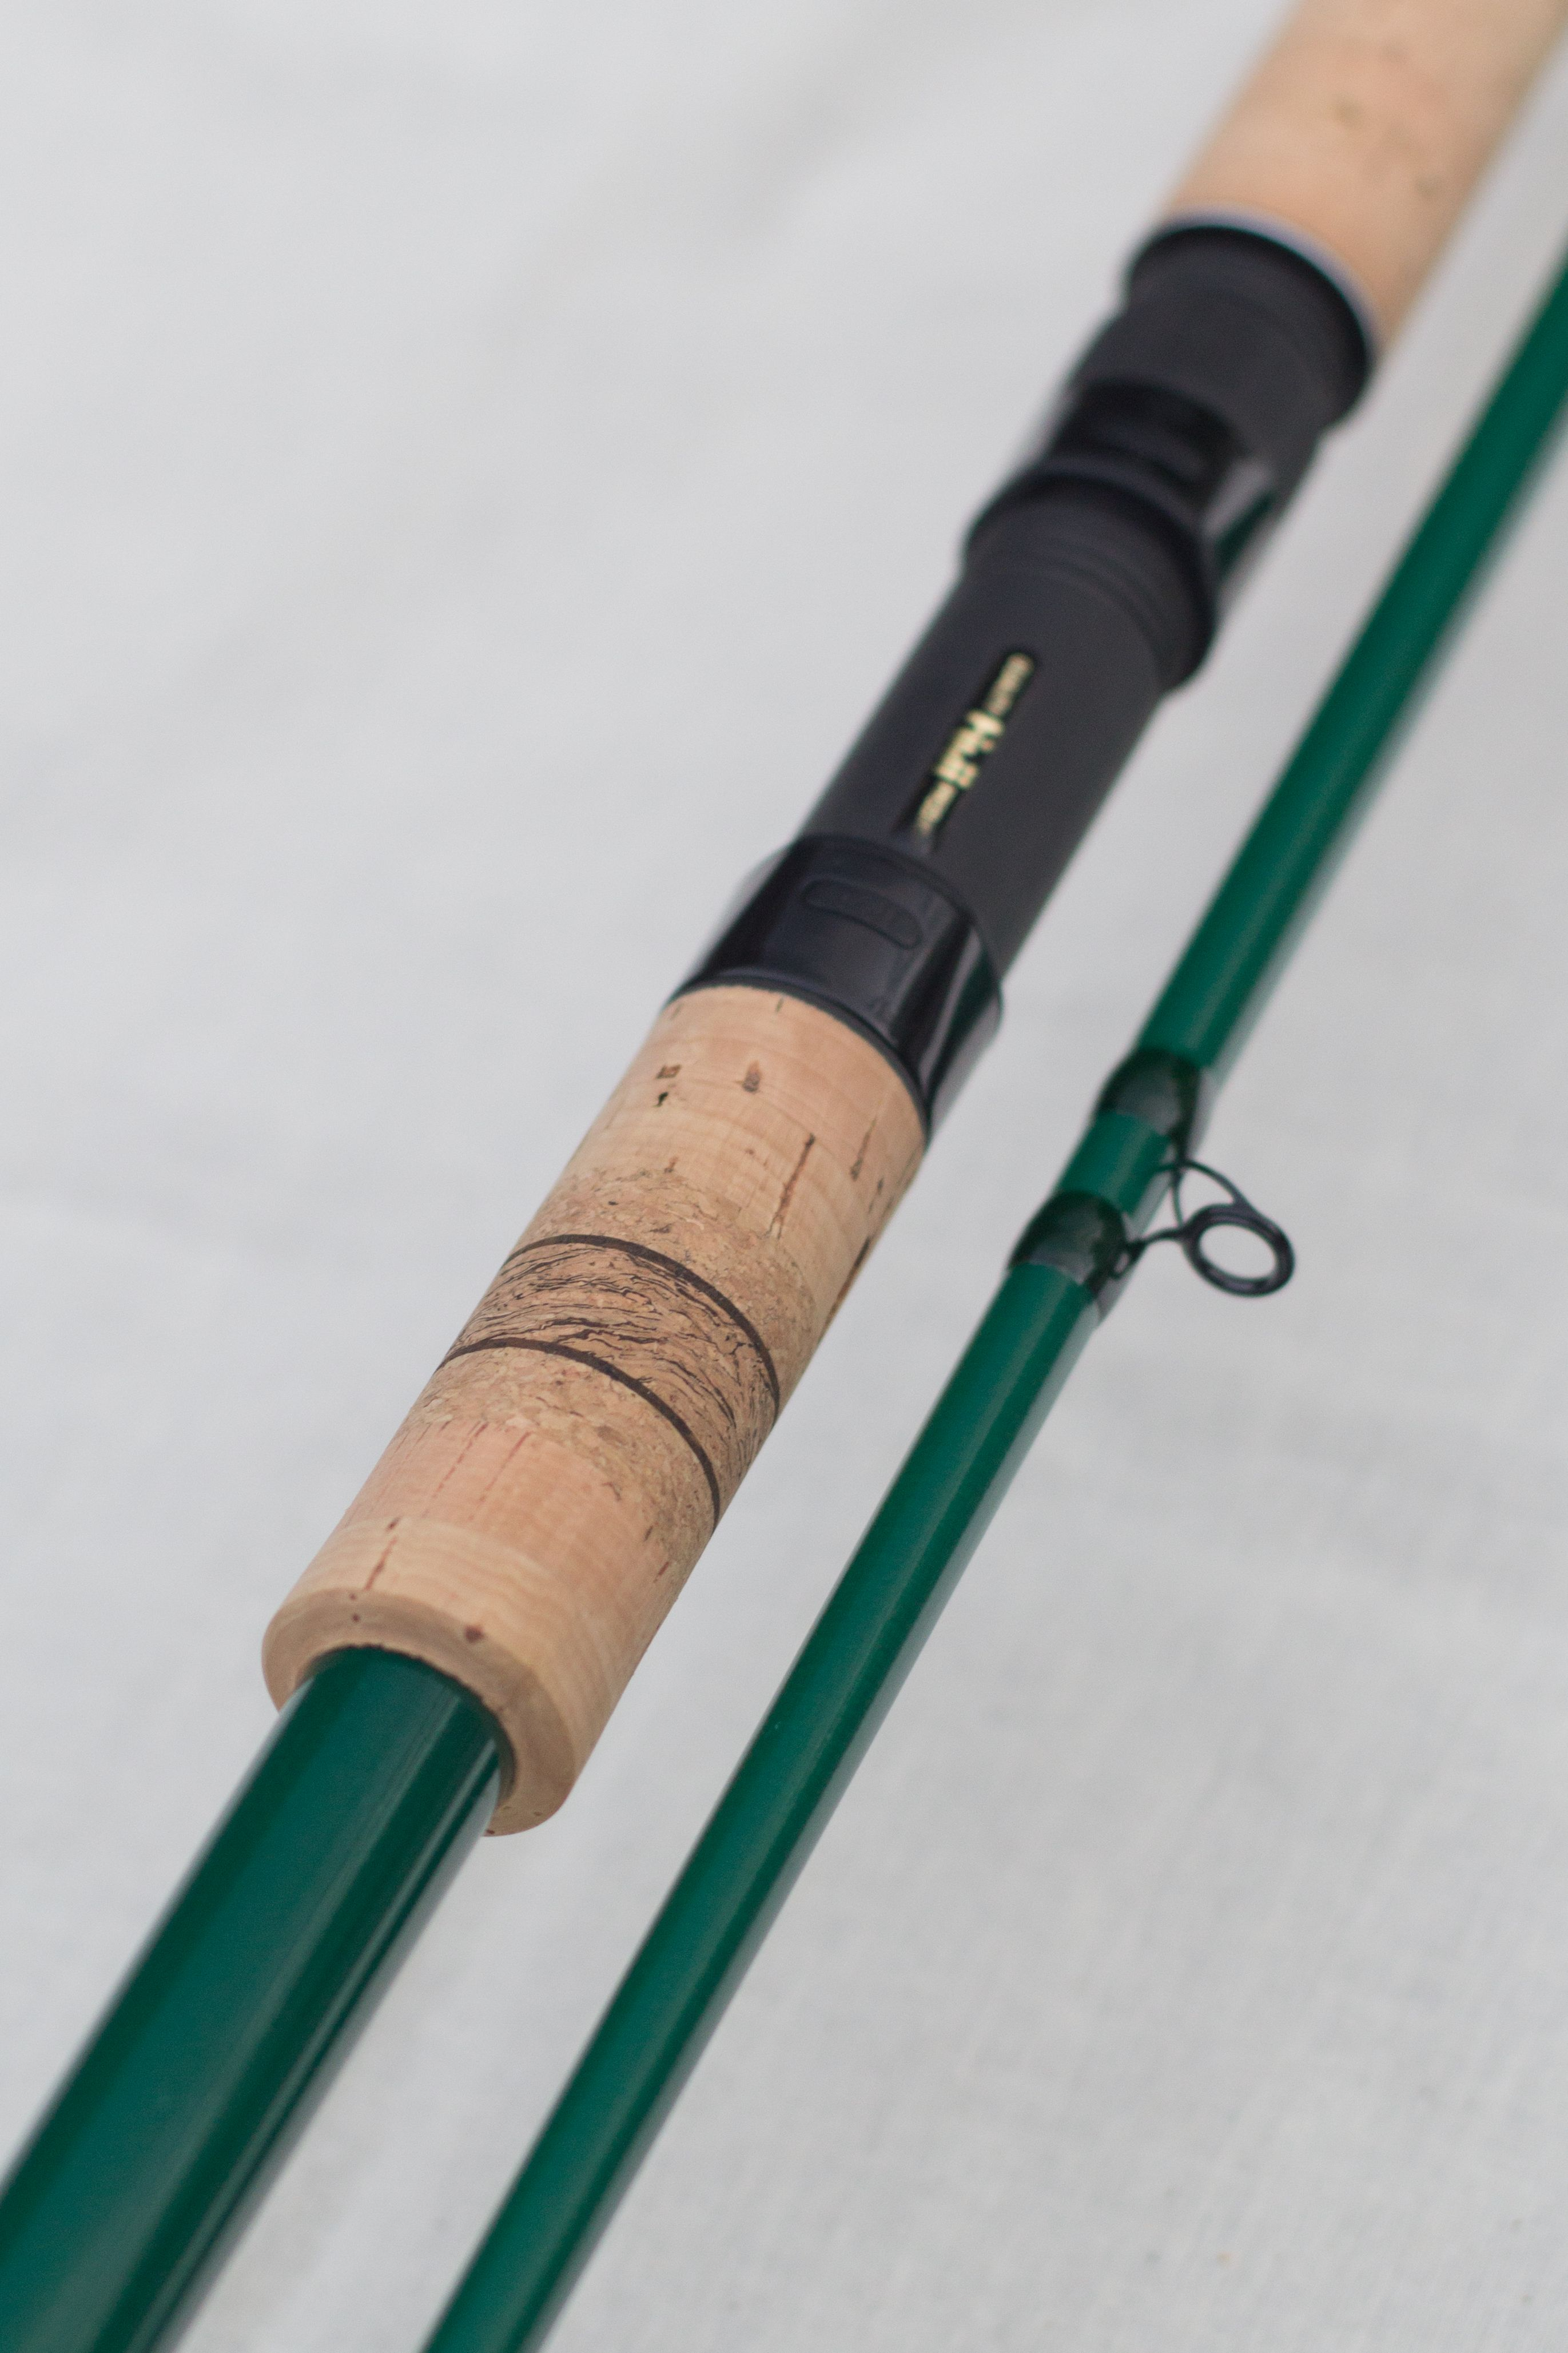 Black On Green Sportex Fiberglass 11ft 2lb Carp Rod Black Fuji Components Silk Wrapped And A Twist Of My Own